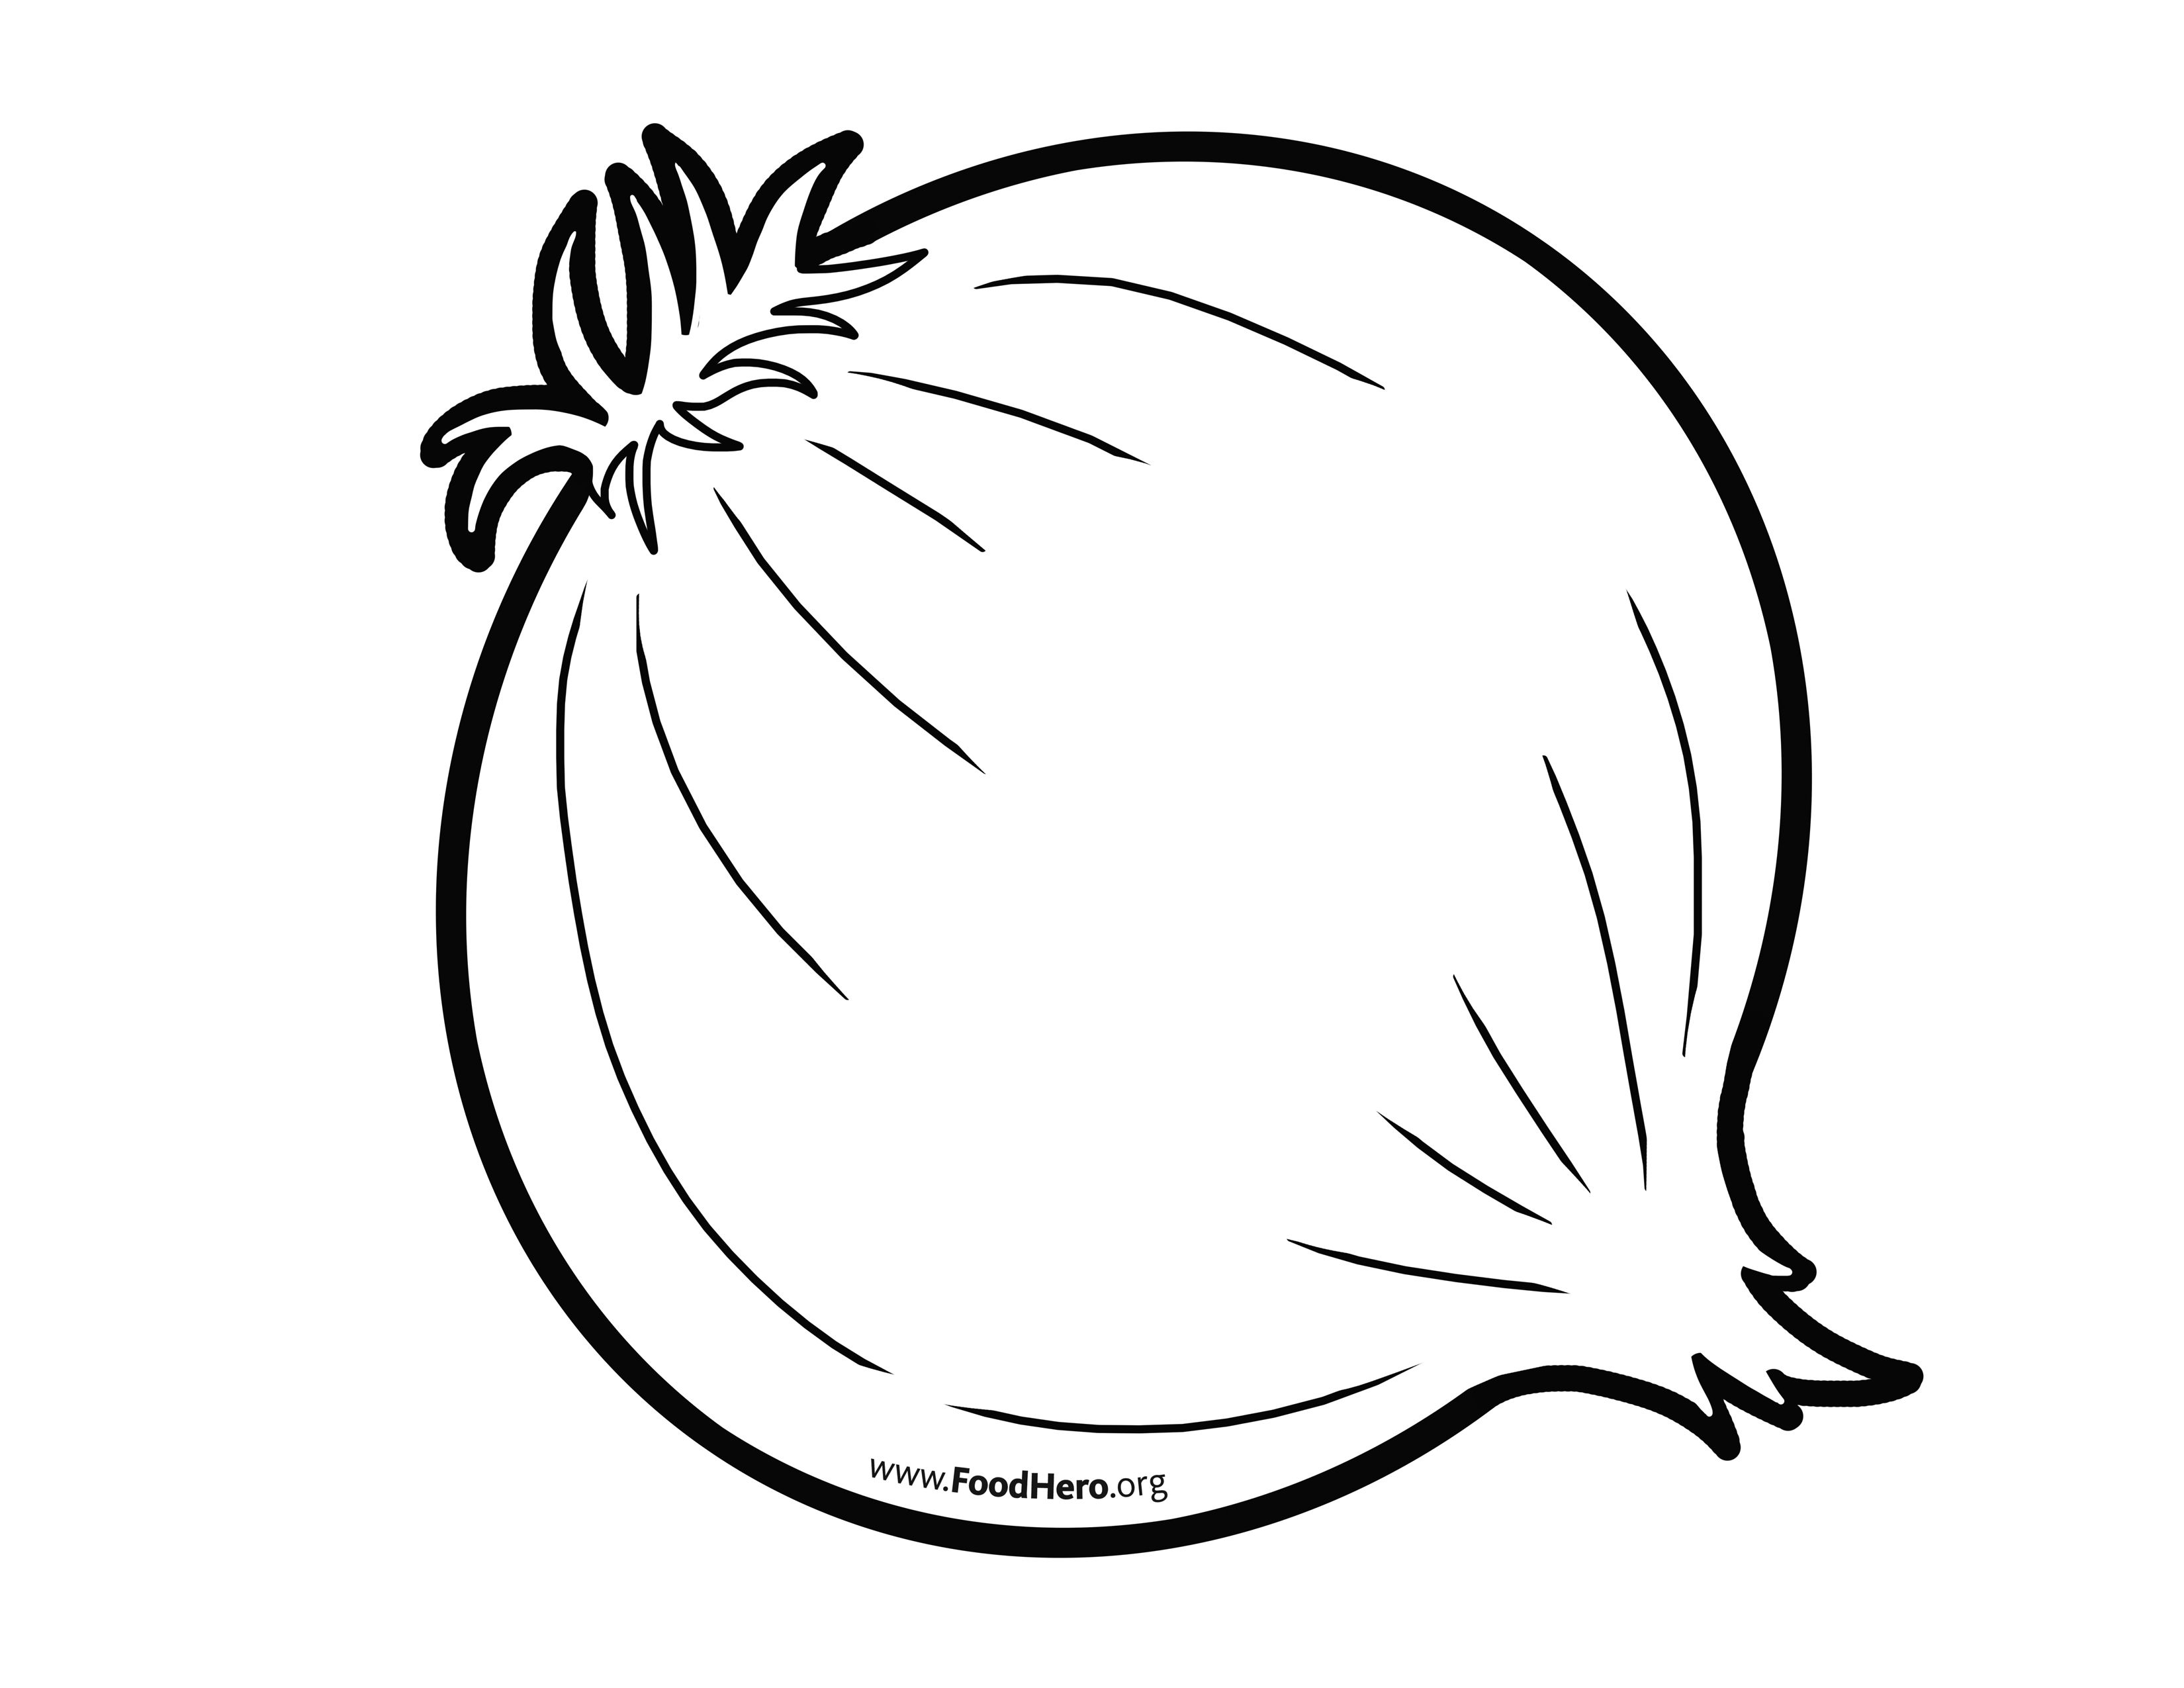 Onions Artwork Find At Foodhero Illustrations